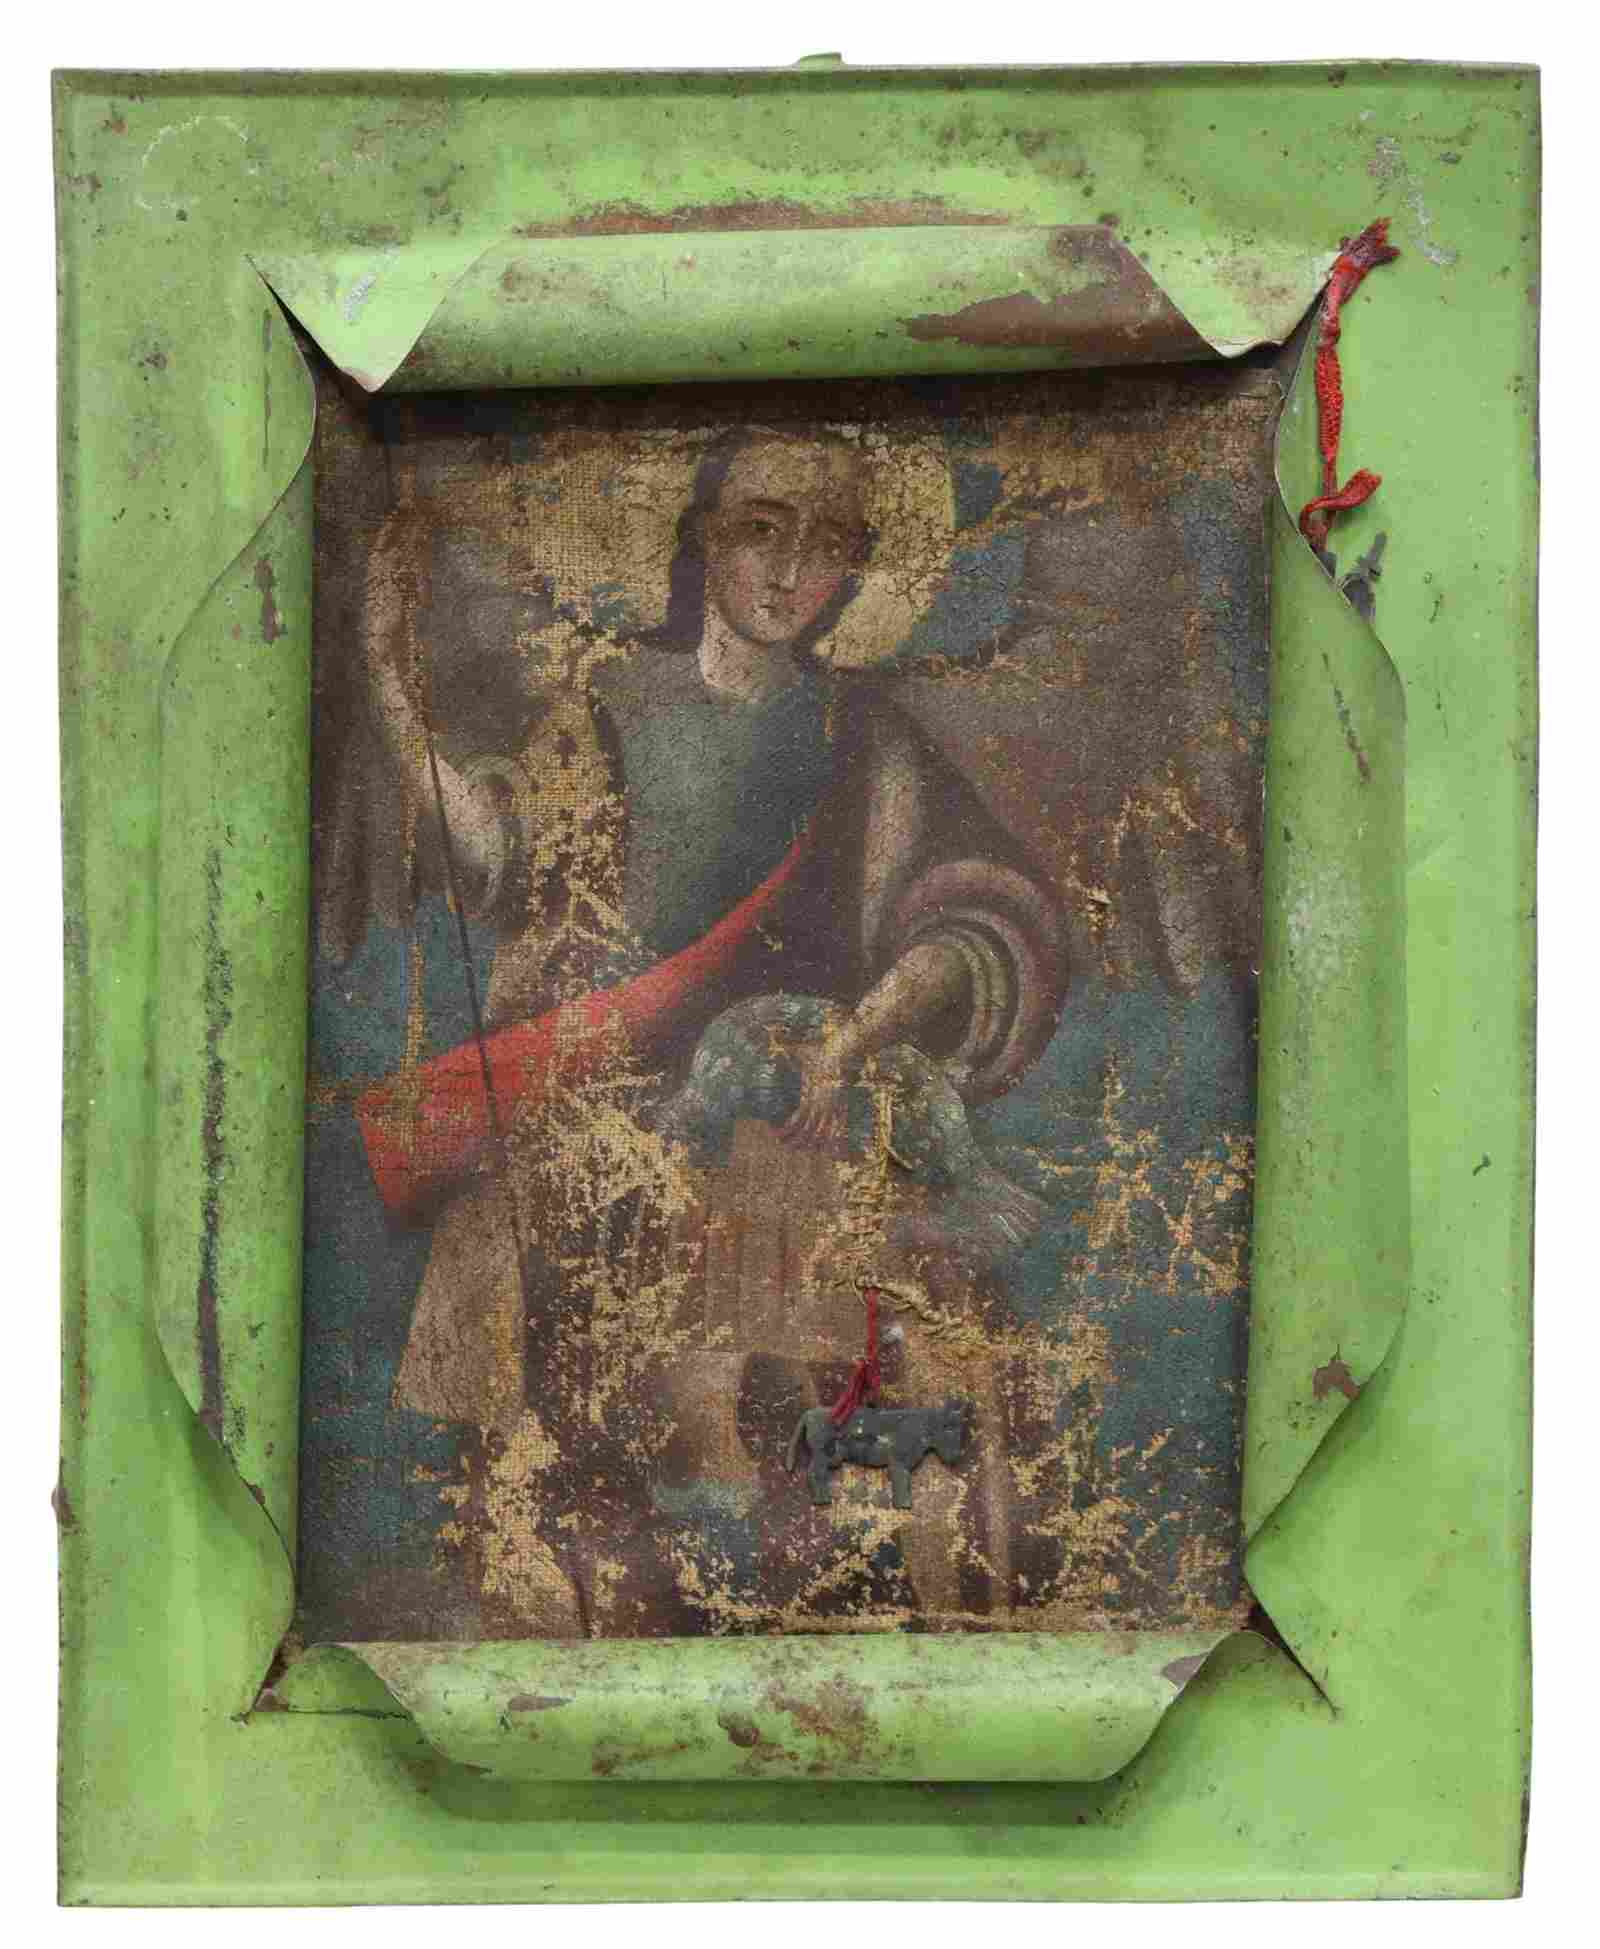 ARCHANGEL RAPHAEL PAINTING ON CANVAS, MEXICO